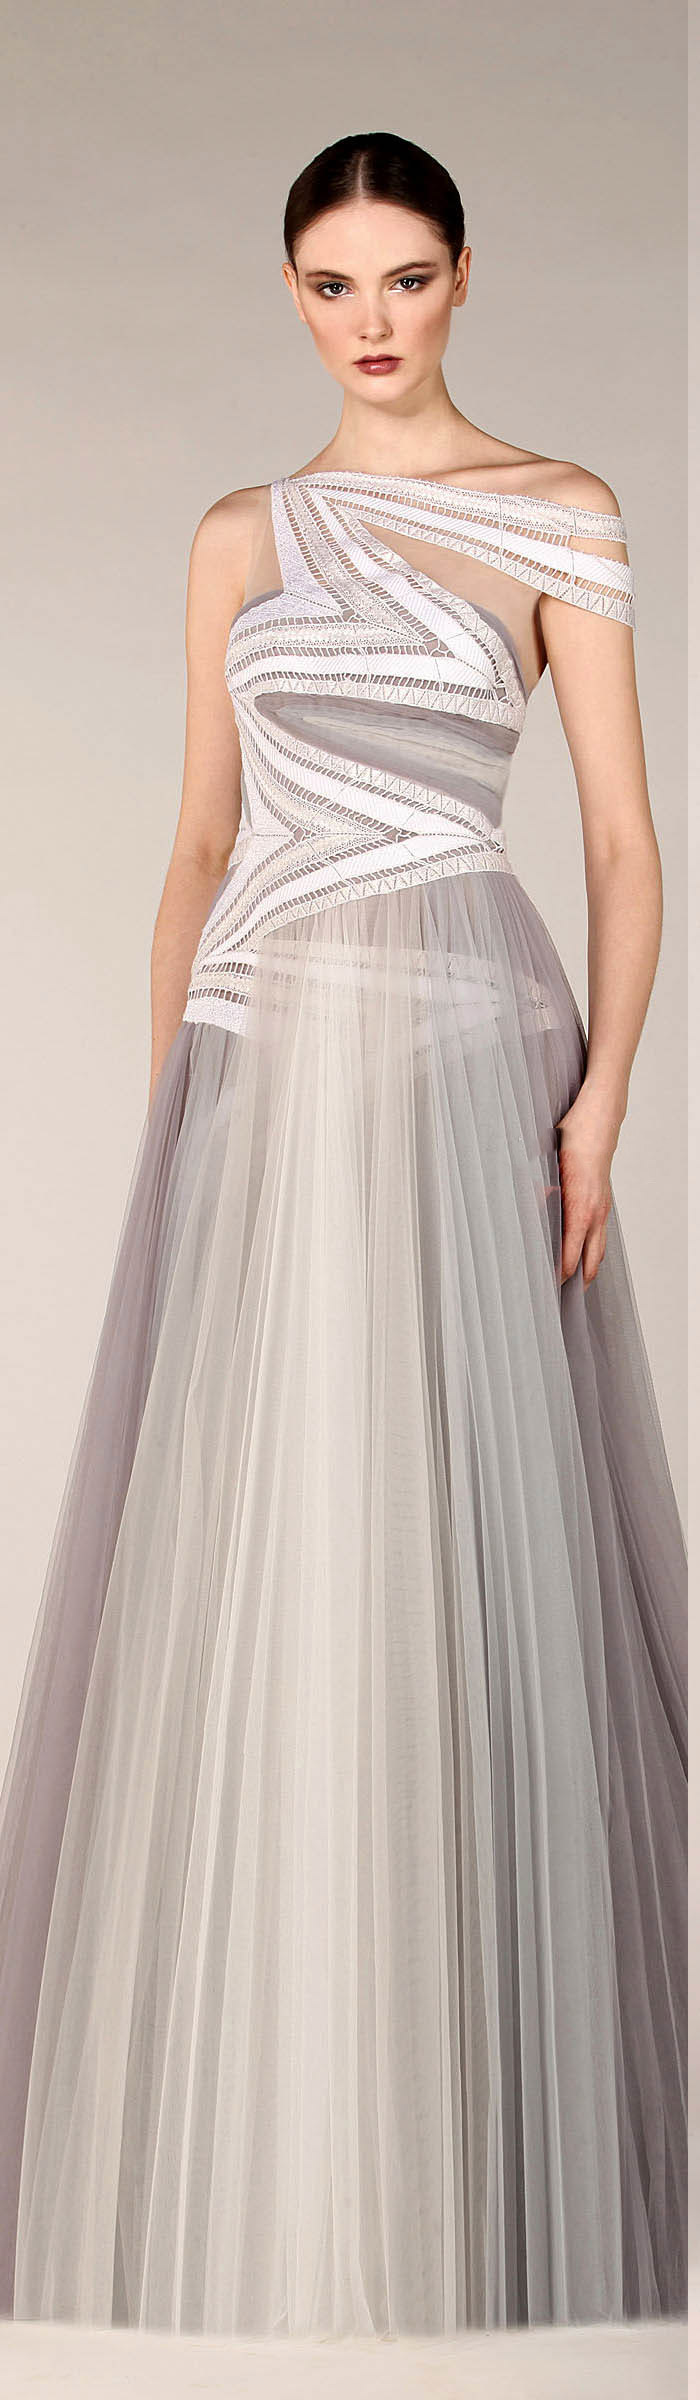 Tony Ward Fall Winter 2013-14 (29)